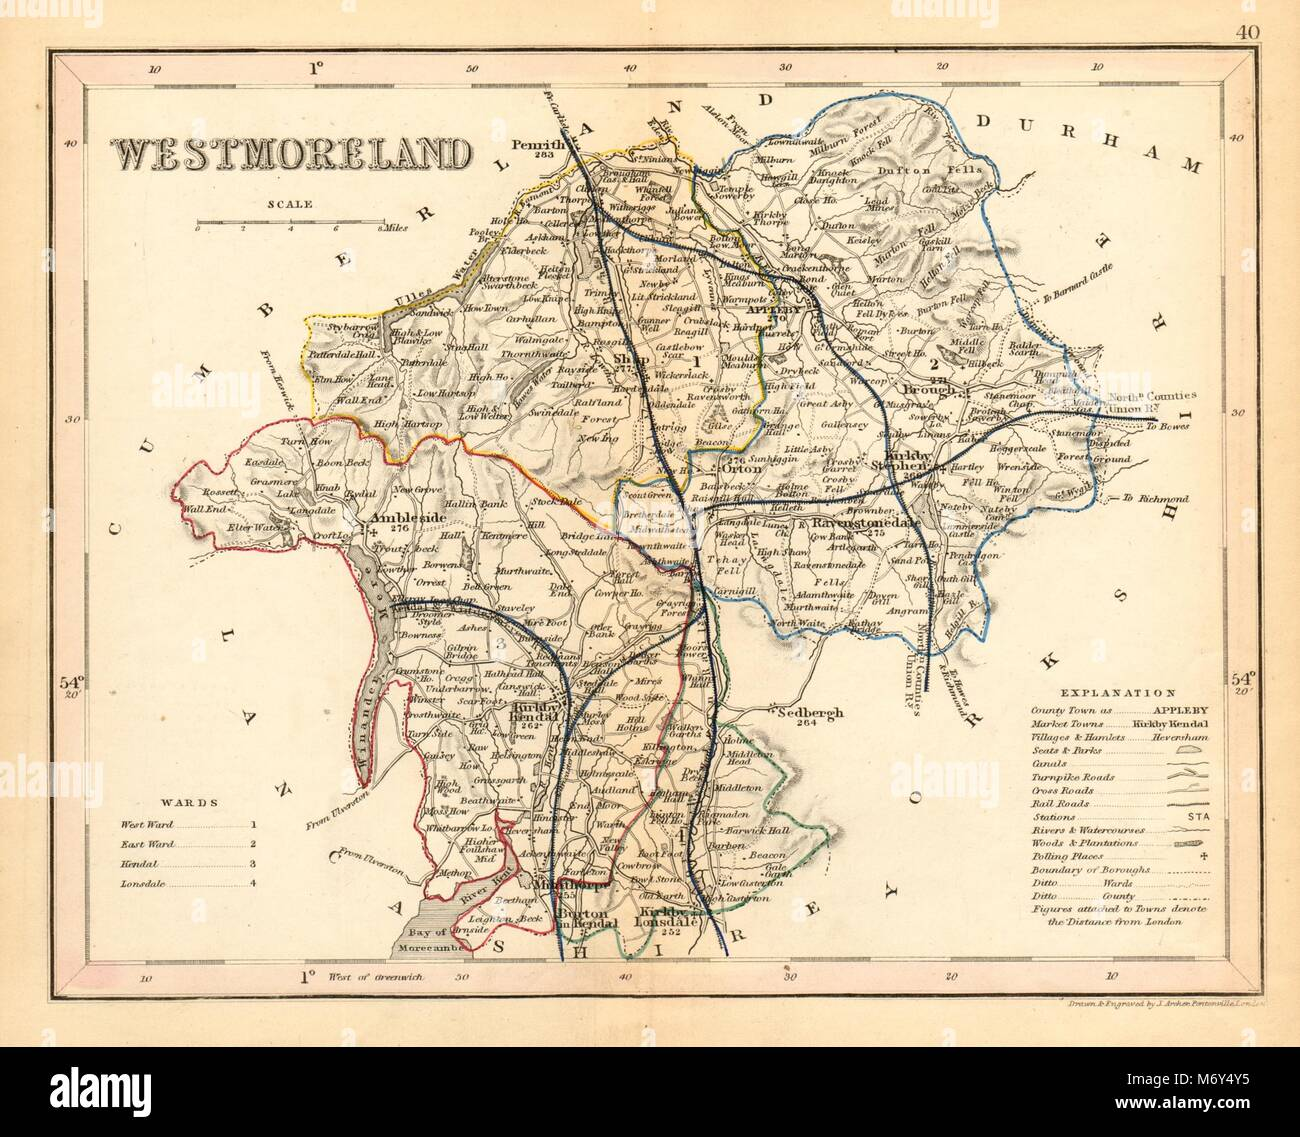 WESTMORELAND county map by ARCHER & DUGDALE  Lake District